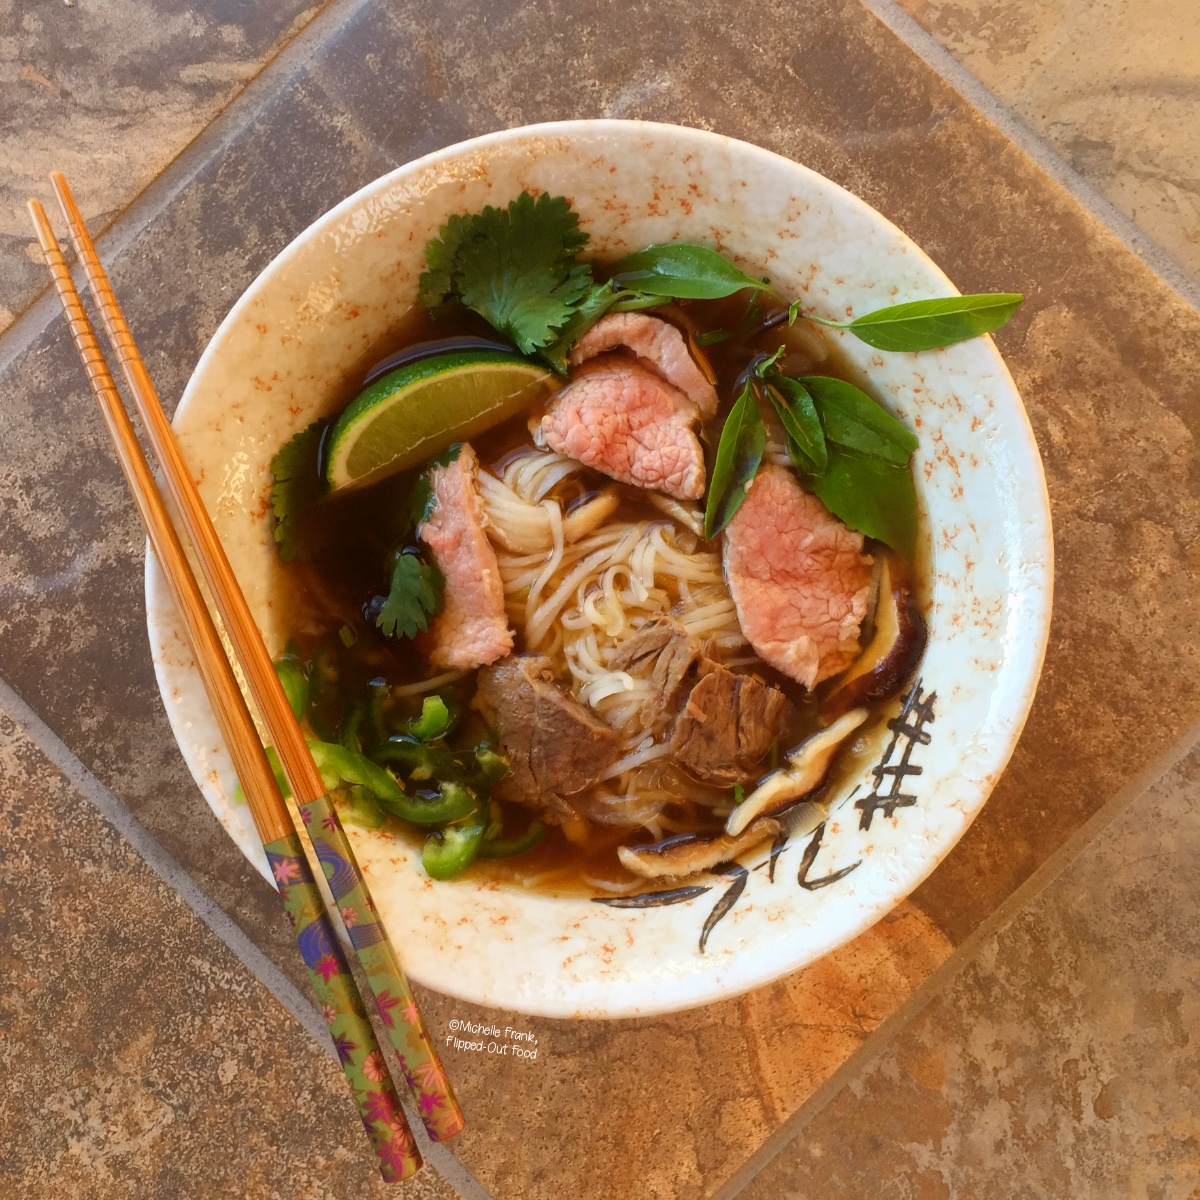 A bowl of Real Deal Beef Pho Noodle Soup, garnished with herbs and a lime wedge. A pair of chopsticks sits on top of the bowl.